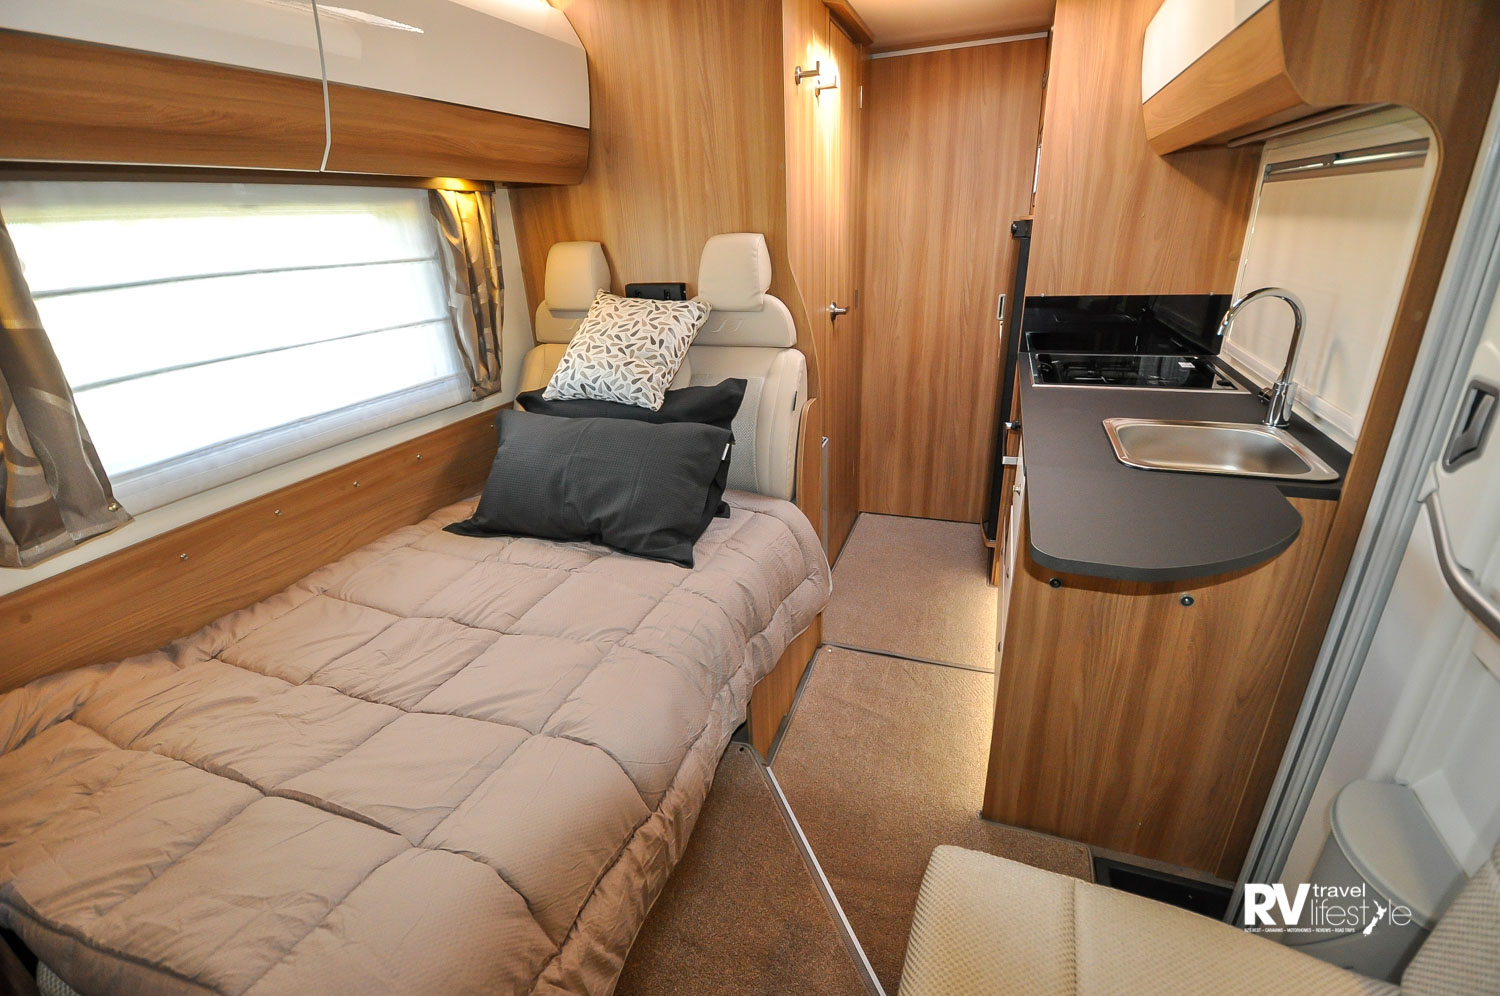 This is the front dinette made into the second berth in the 79-4T 4-berth with the rear bedroom having two single bed layout